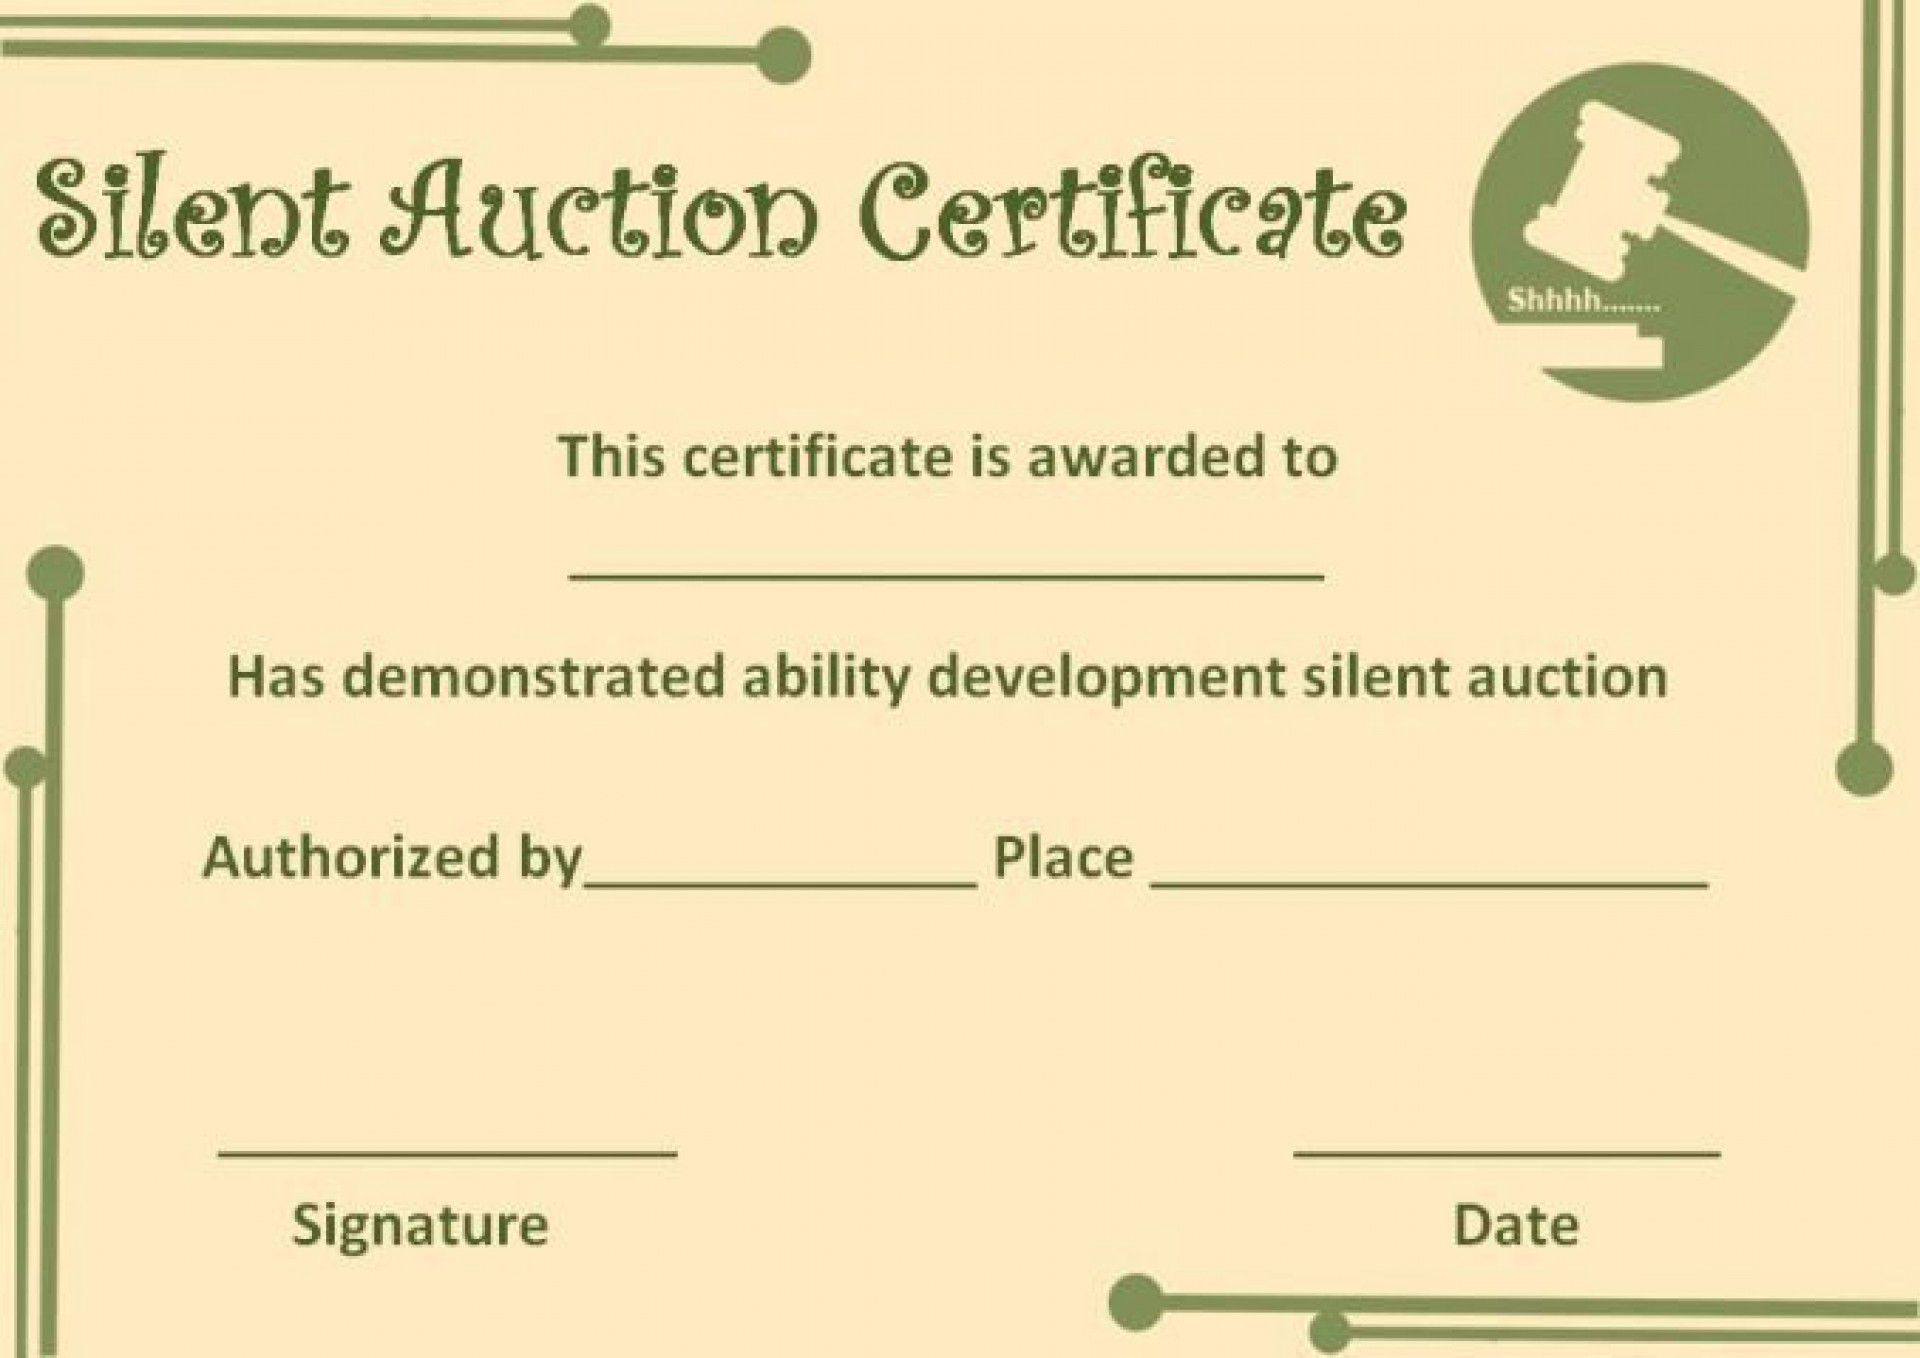 009 Astounding Free Silent Auction Gift Certificate Template Design Full